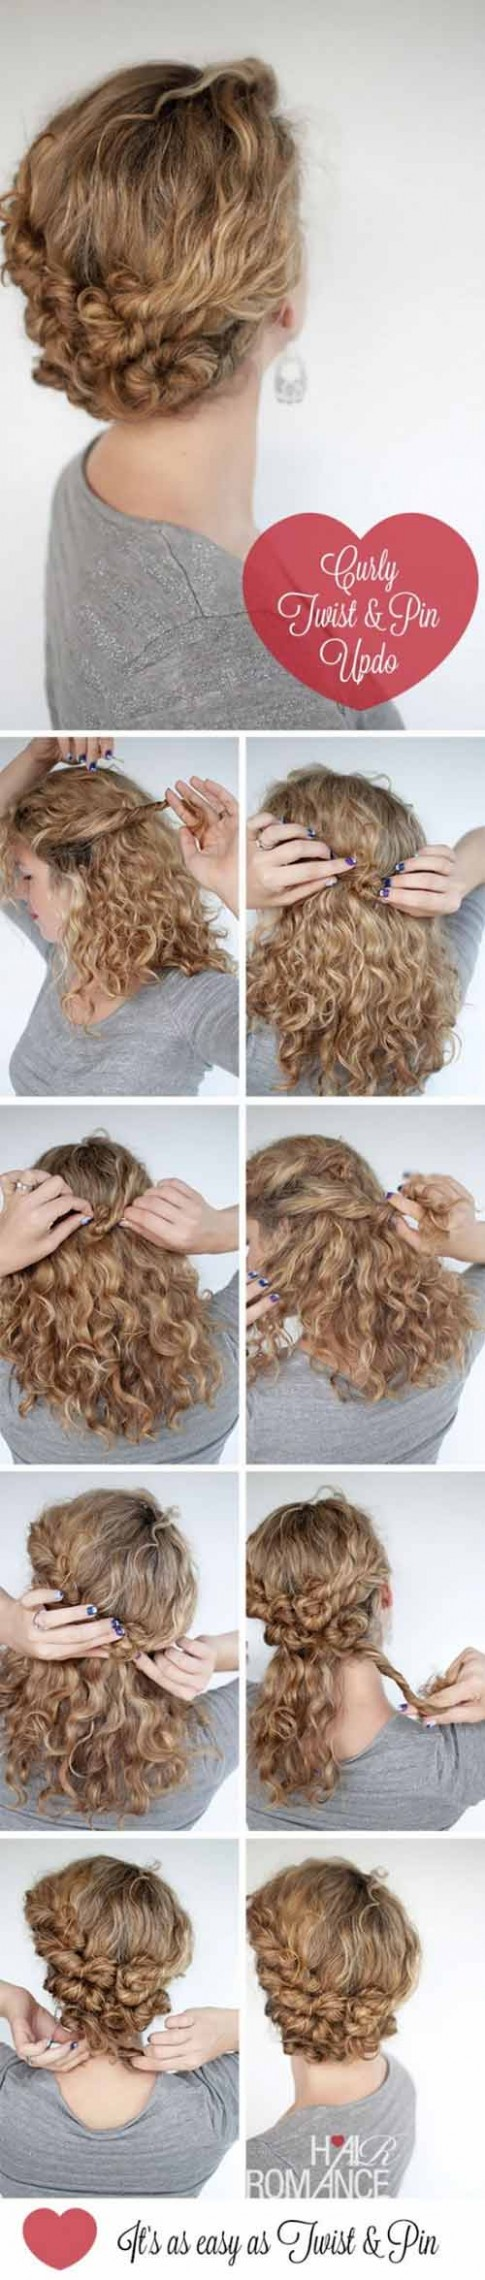 8 Incredibly Stunning DIY Updos For Curly Hair Formal Hairstyles For Curly Hair